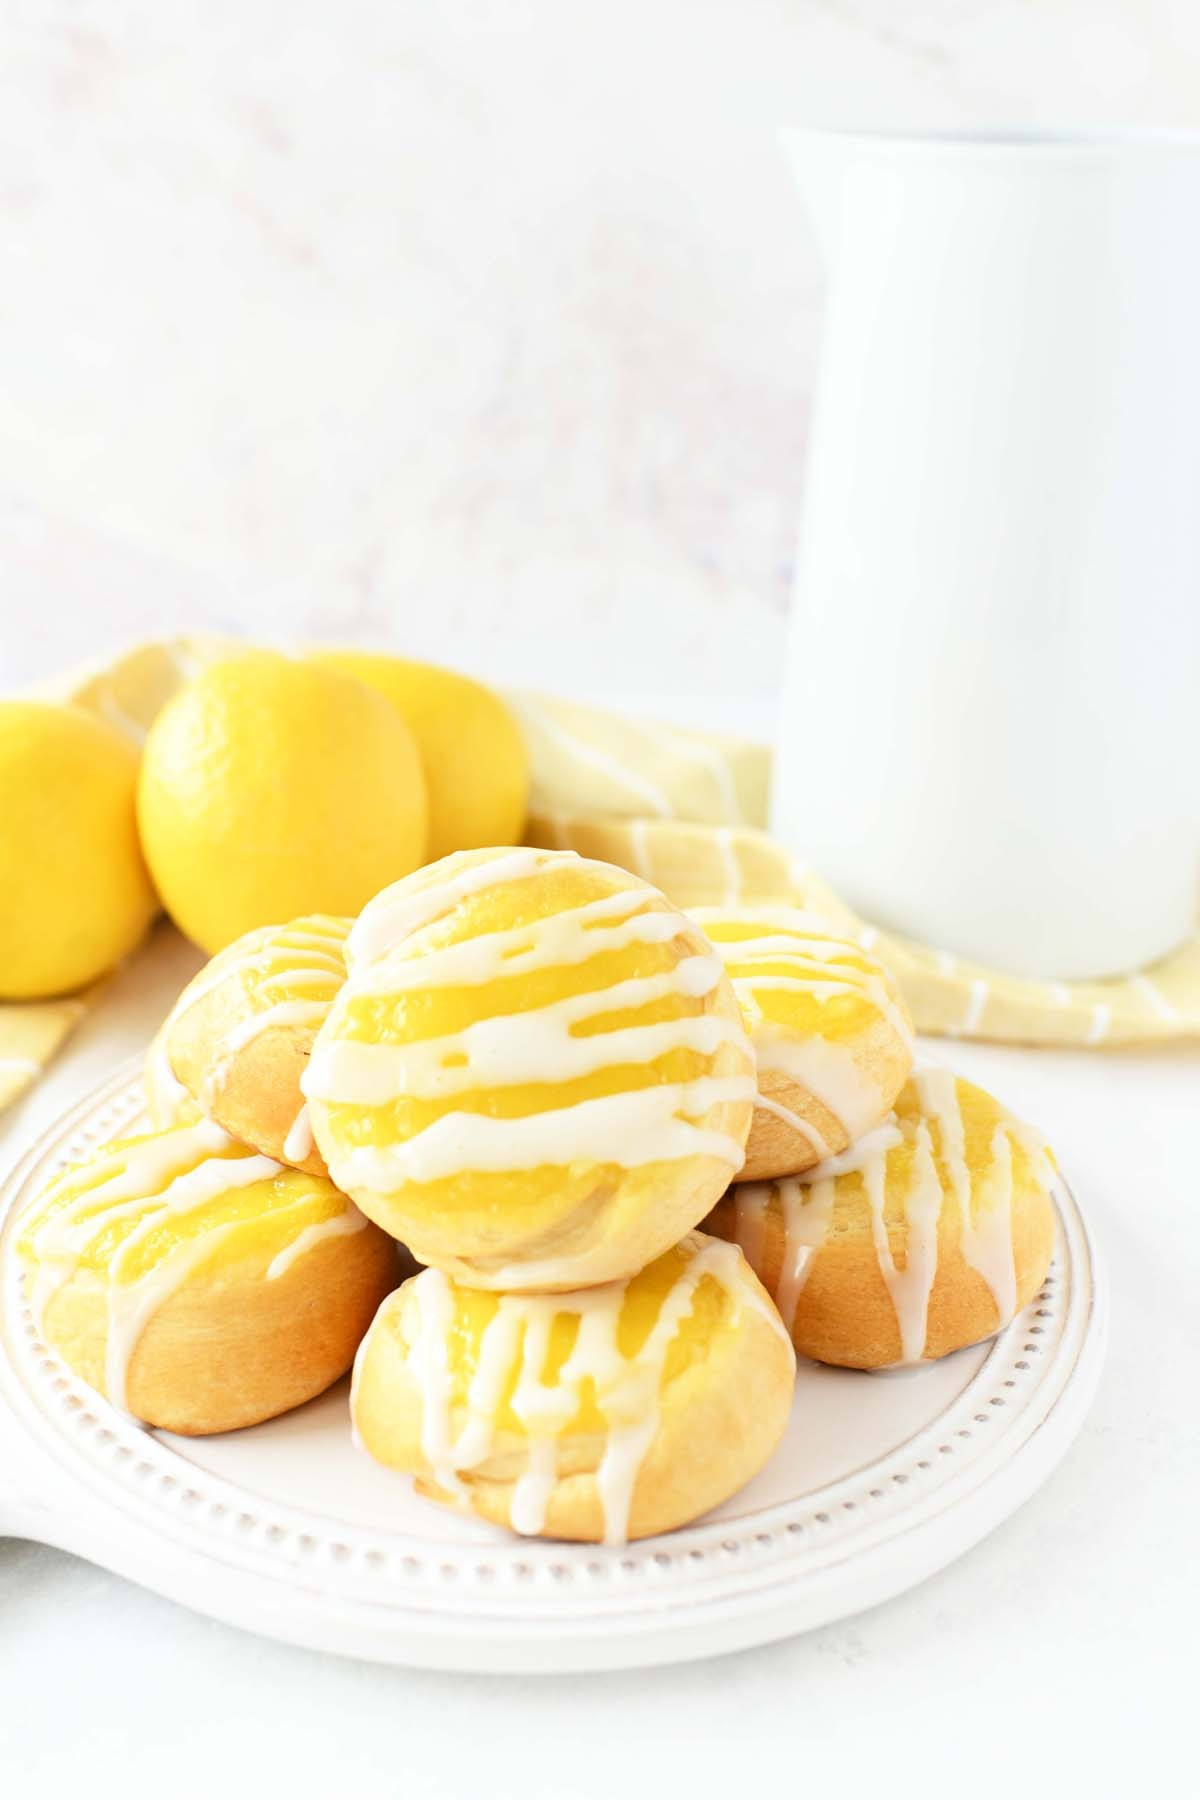 Lemon Danish with with icing on a white plate with fresh lemons.